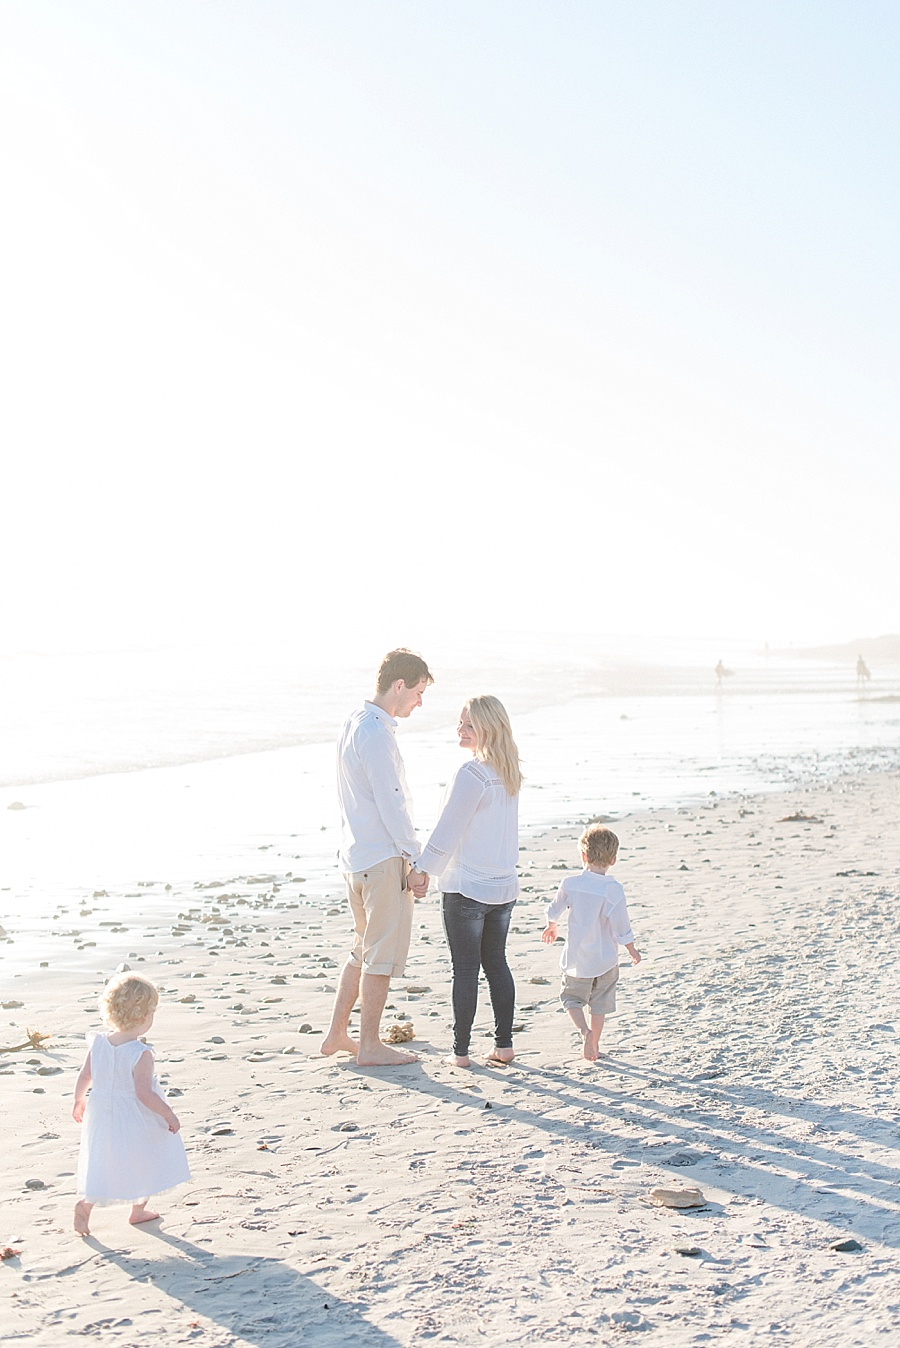 Darren Bester - Cape Town - Family - Lifestyle - Photographer - Beach - Natalie and Travis_0005.jpg